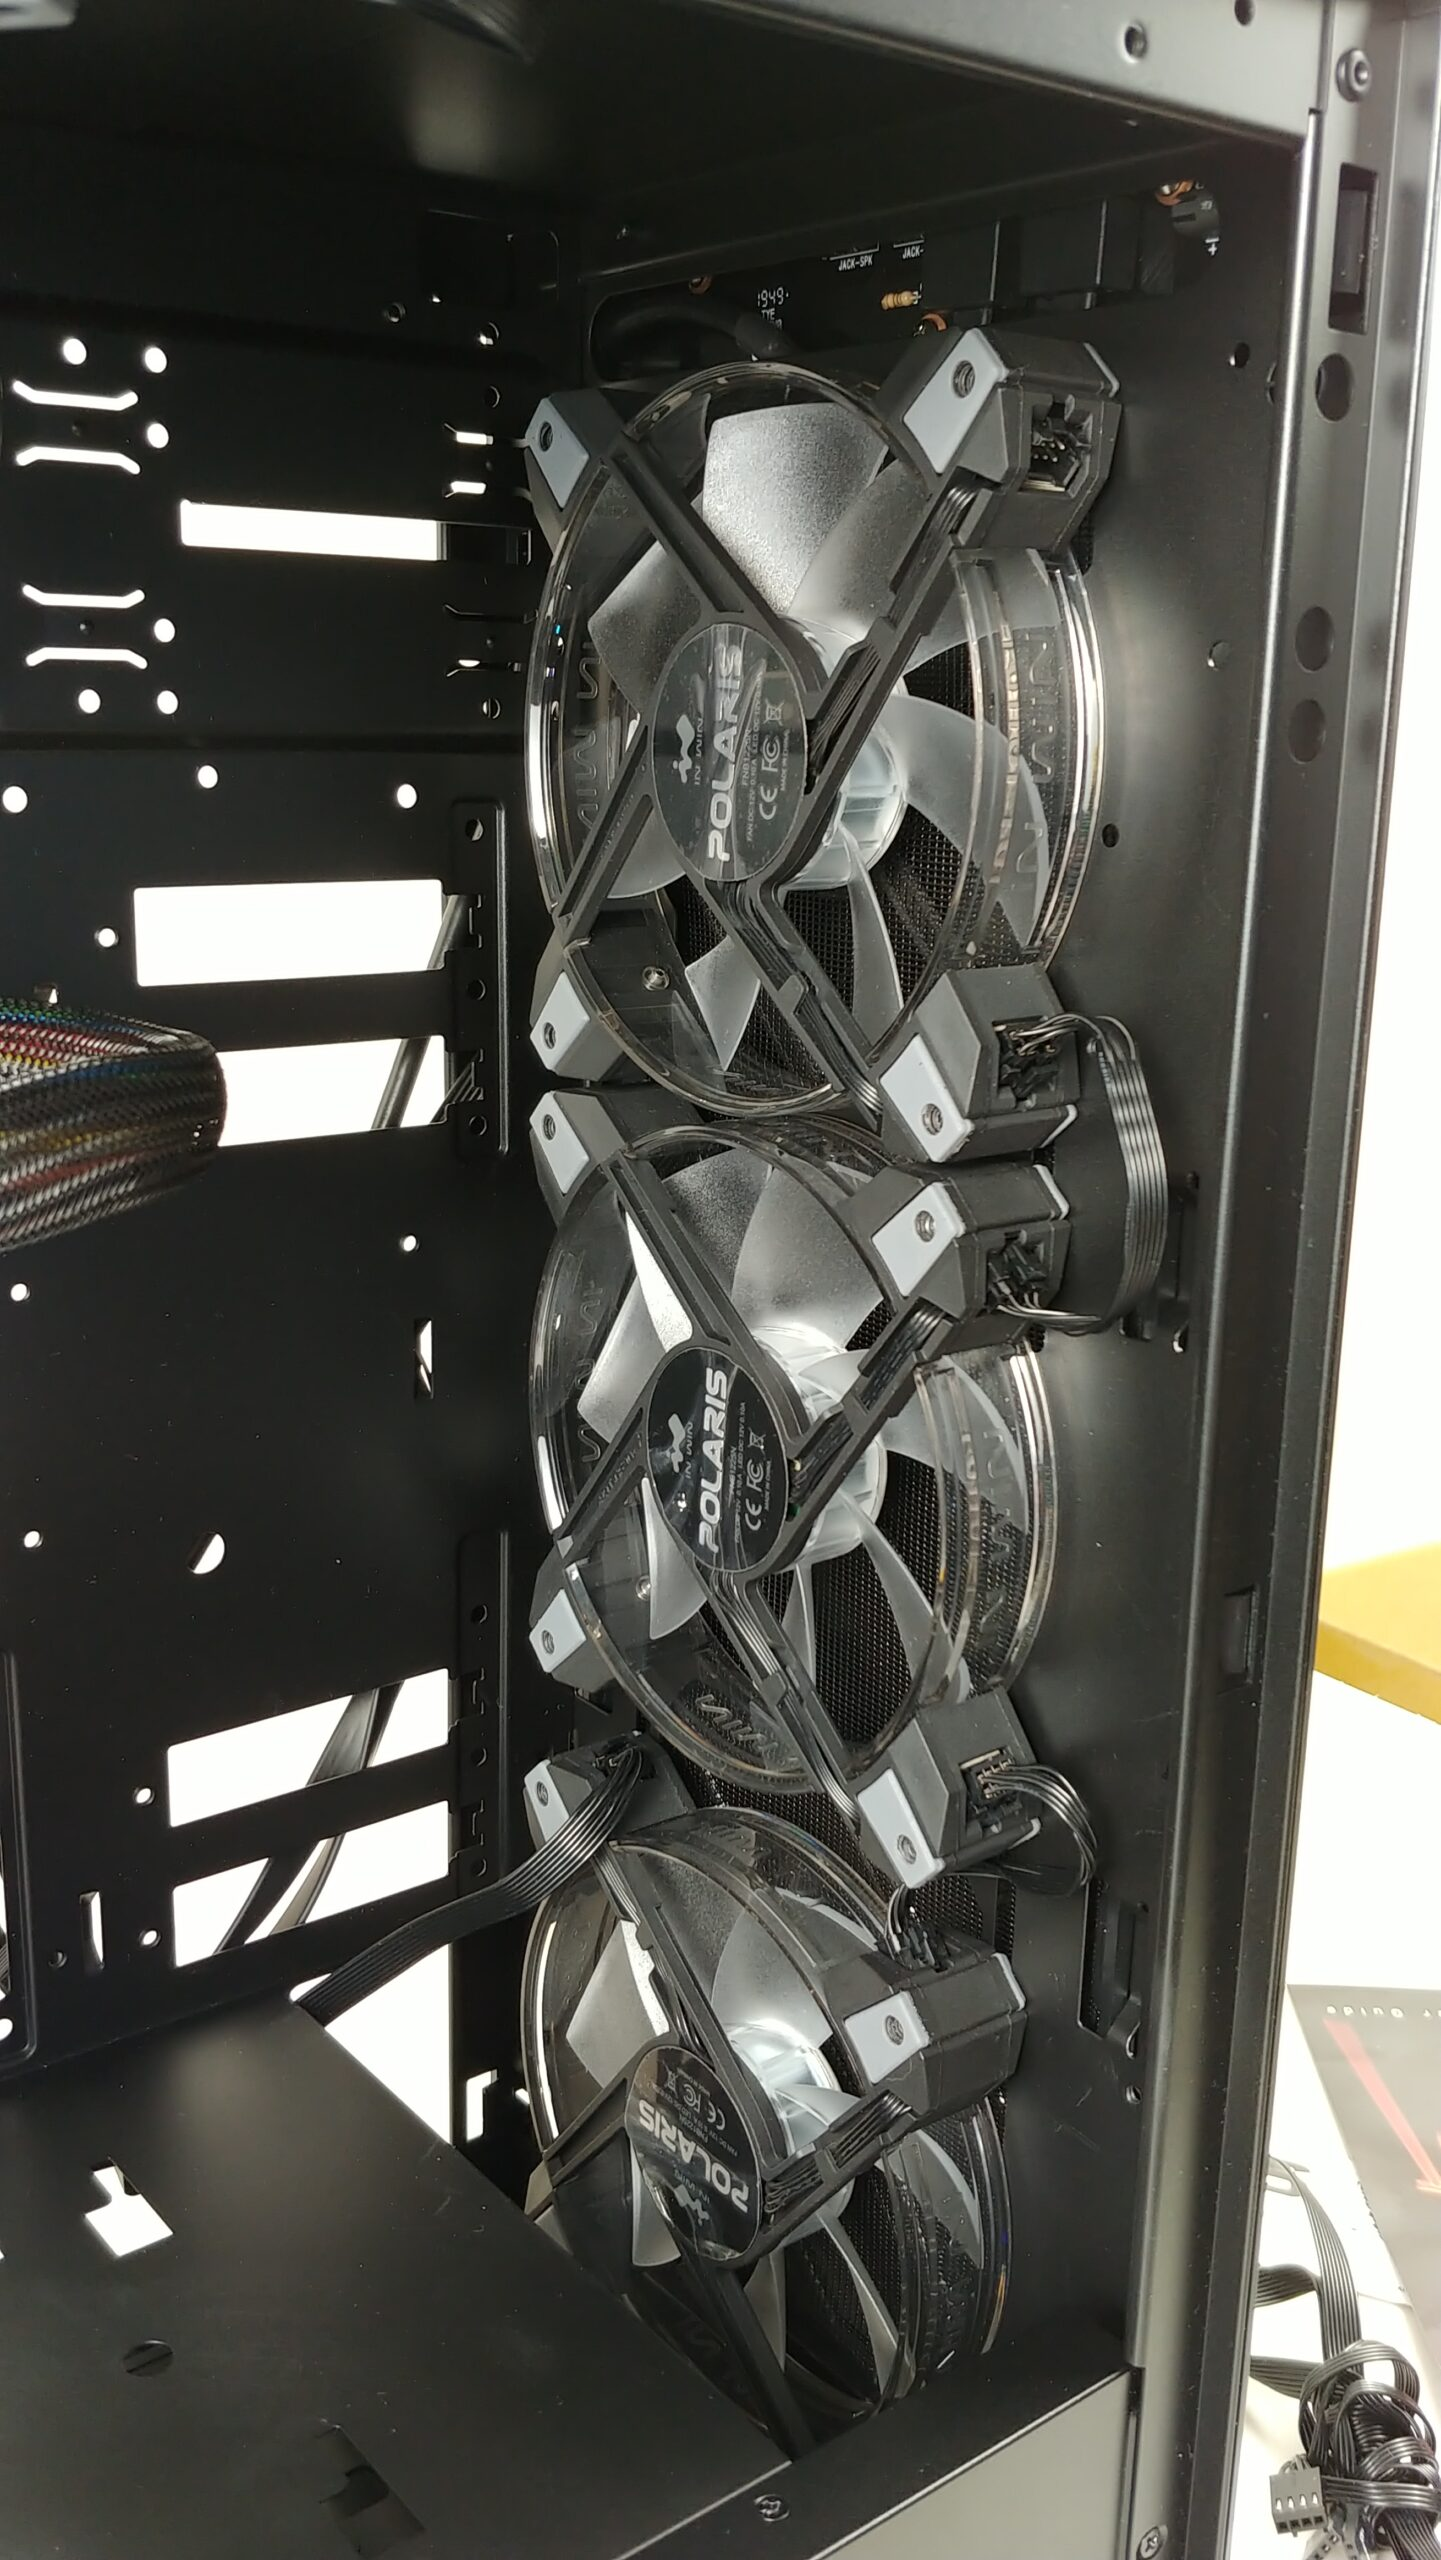 Inside view of the fans mounted to the front in the InWin 216.